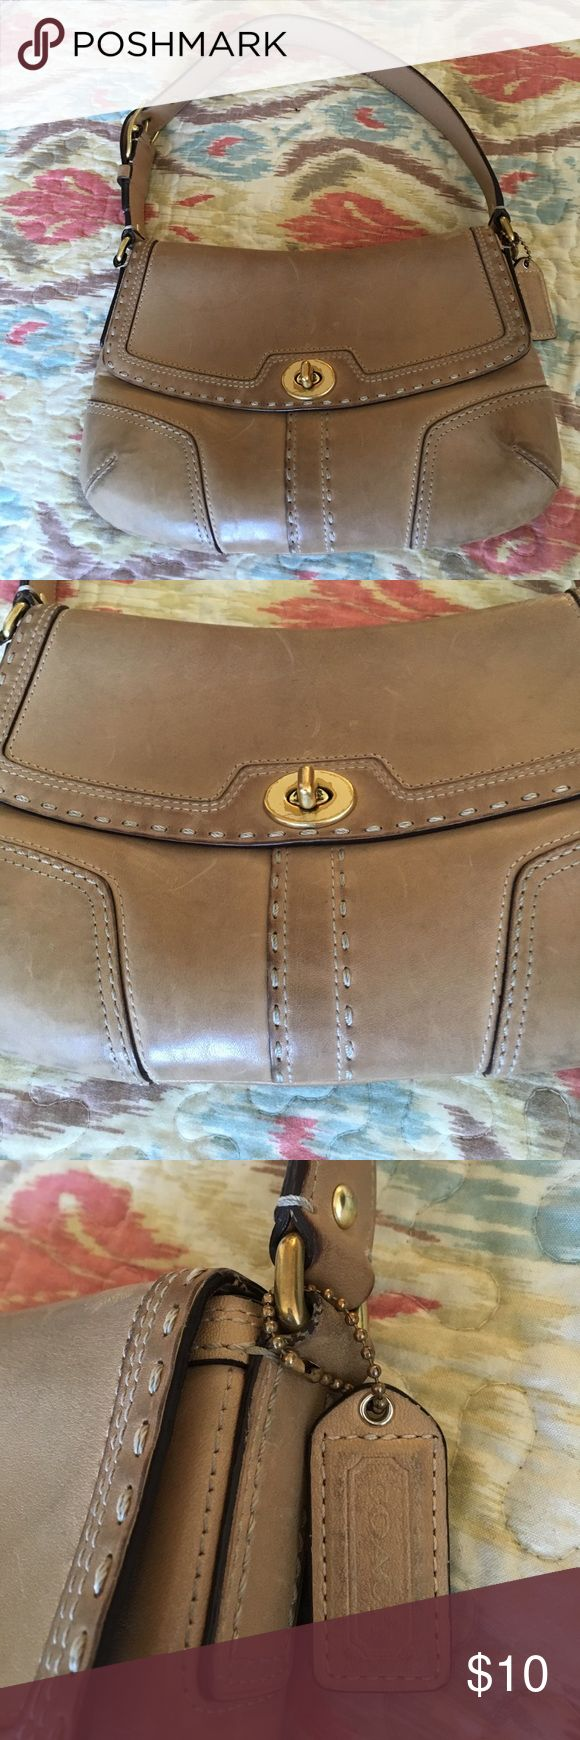 "COACH LEATHER HANDBAG TAN BRASS HARDWARE USED CONDITION SEE PICS NO HOLES CAN BE CLEANED CUTE AUTHENTIC H 7"" W 11"" Strap Drop 8"" Dept 3"" GREAT PRICE. Coach Bags Shoulder Bags"